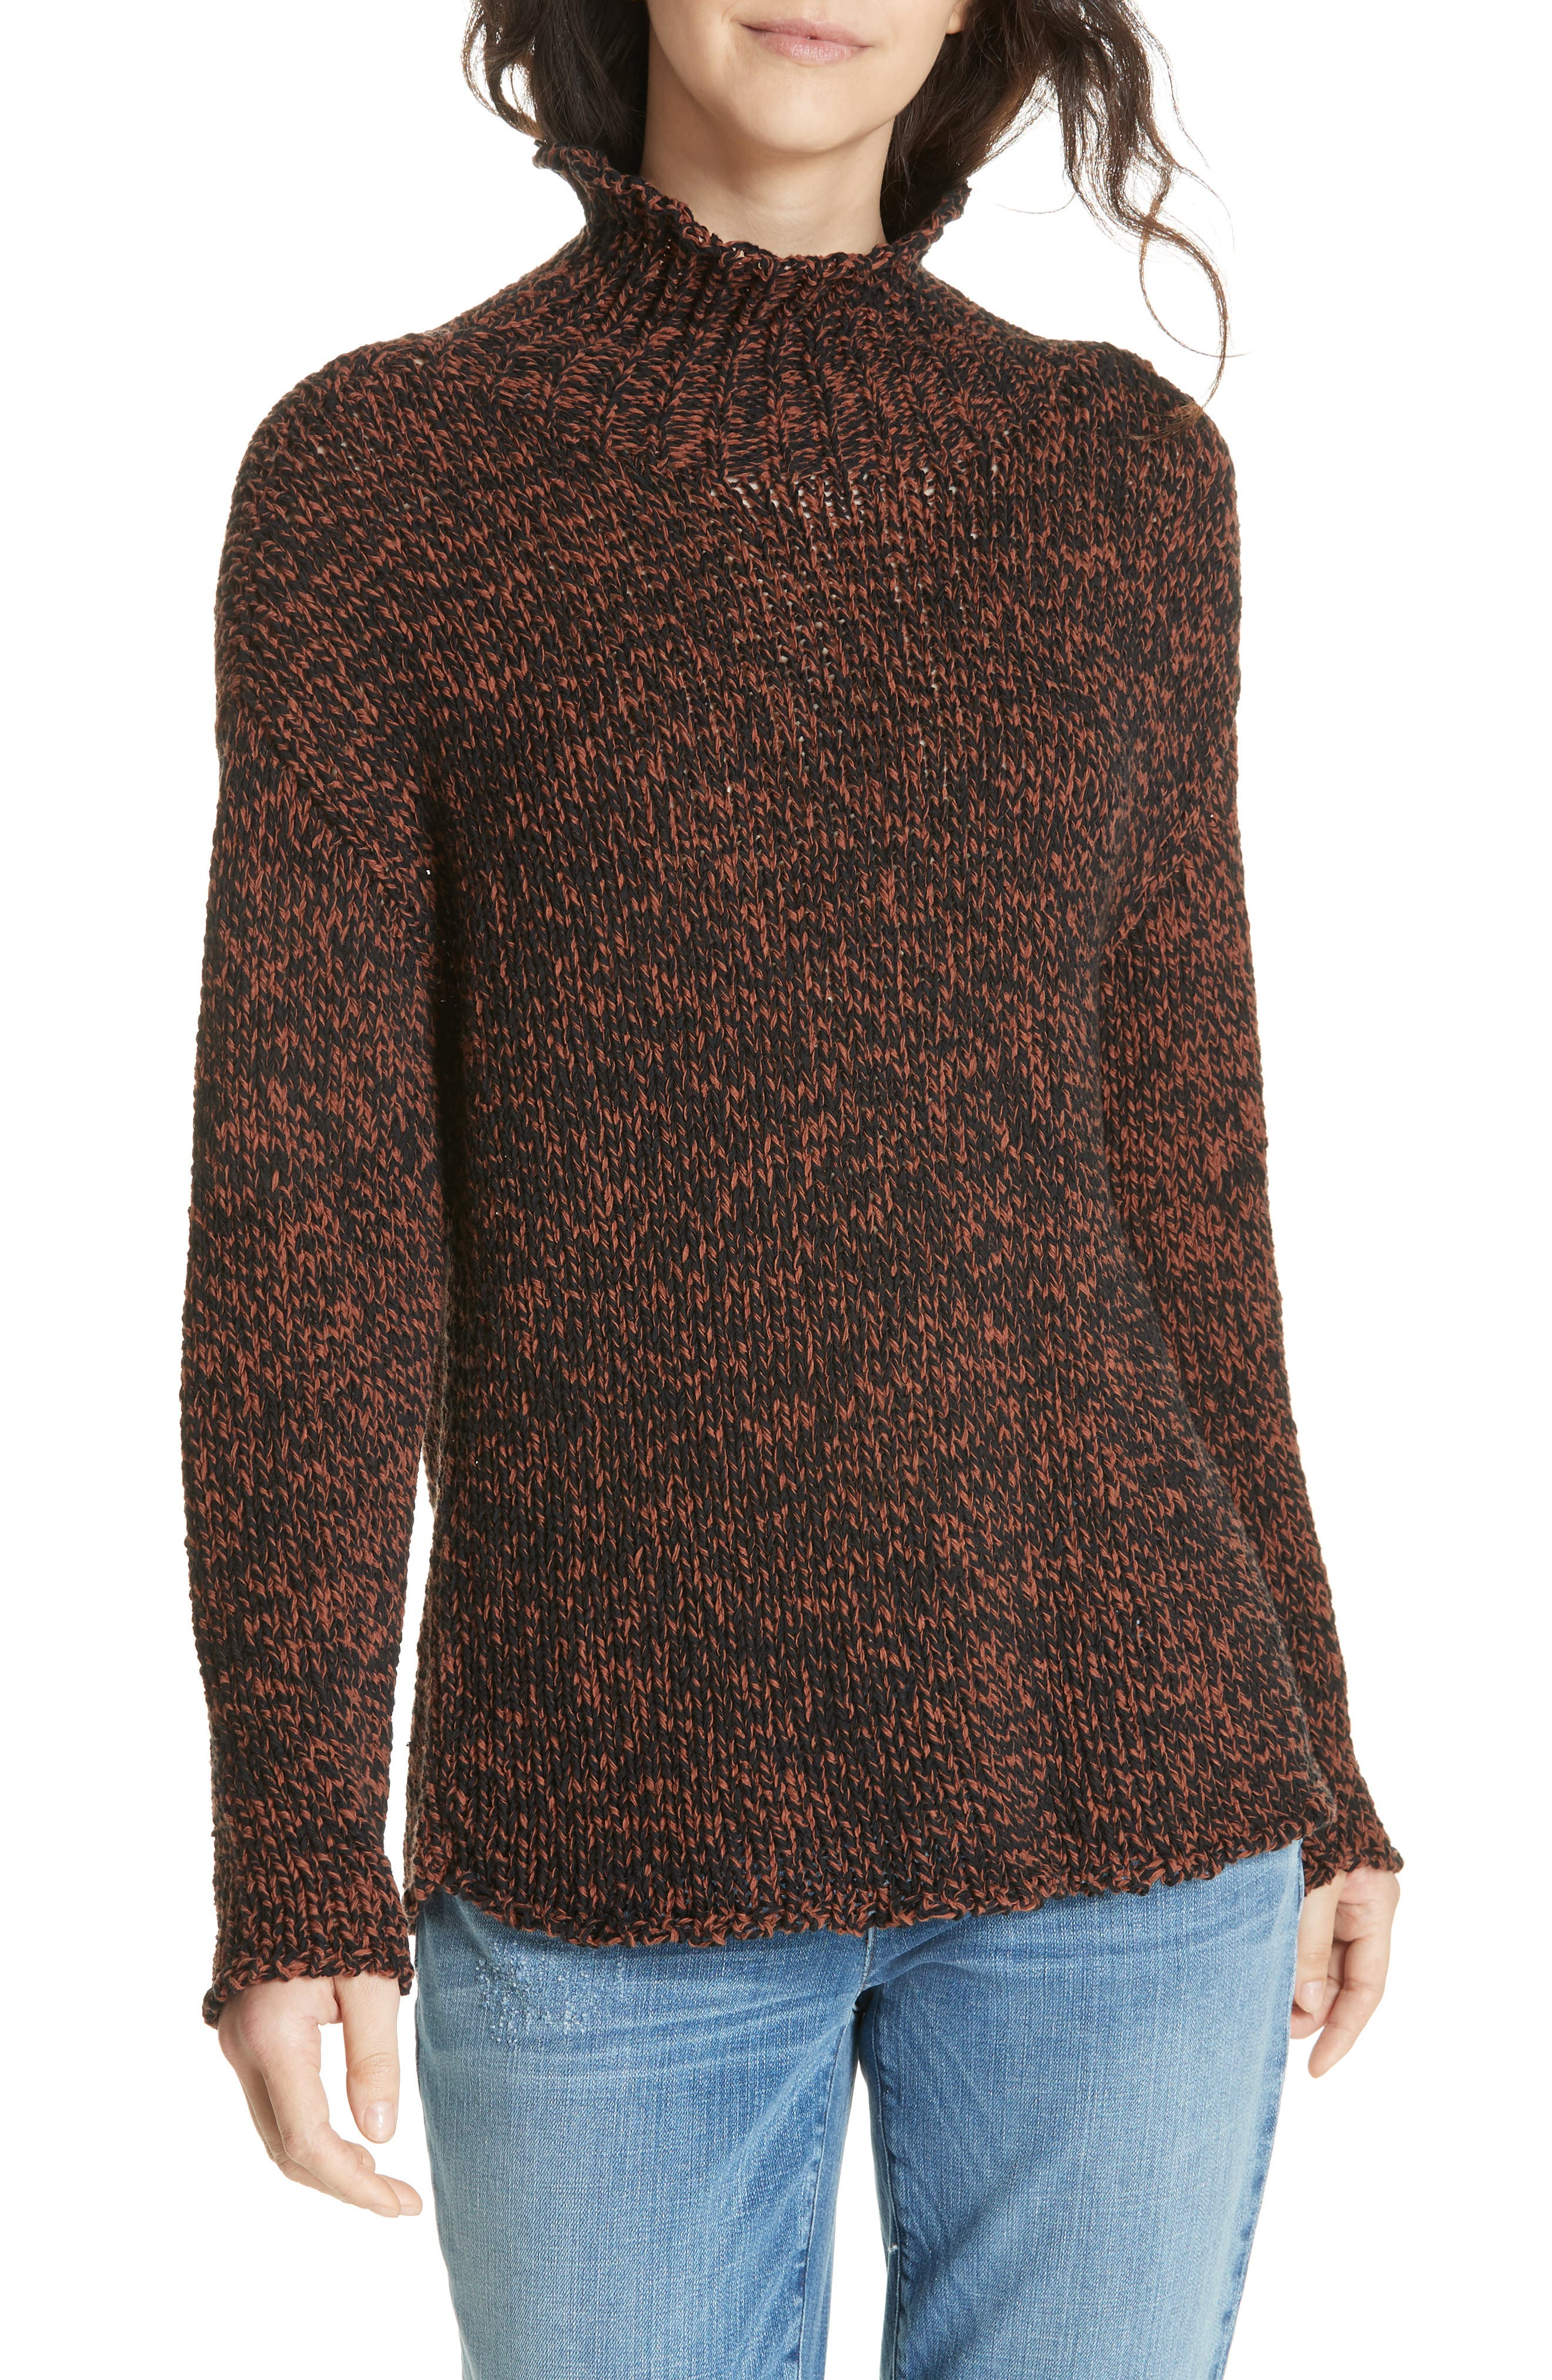 Marled Organic Cotton Blend Sweater,                         Main,                         color, NUTMEG